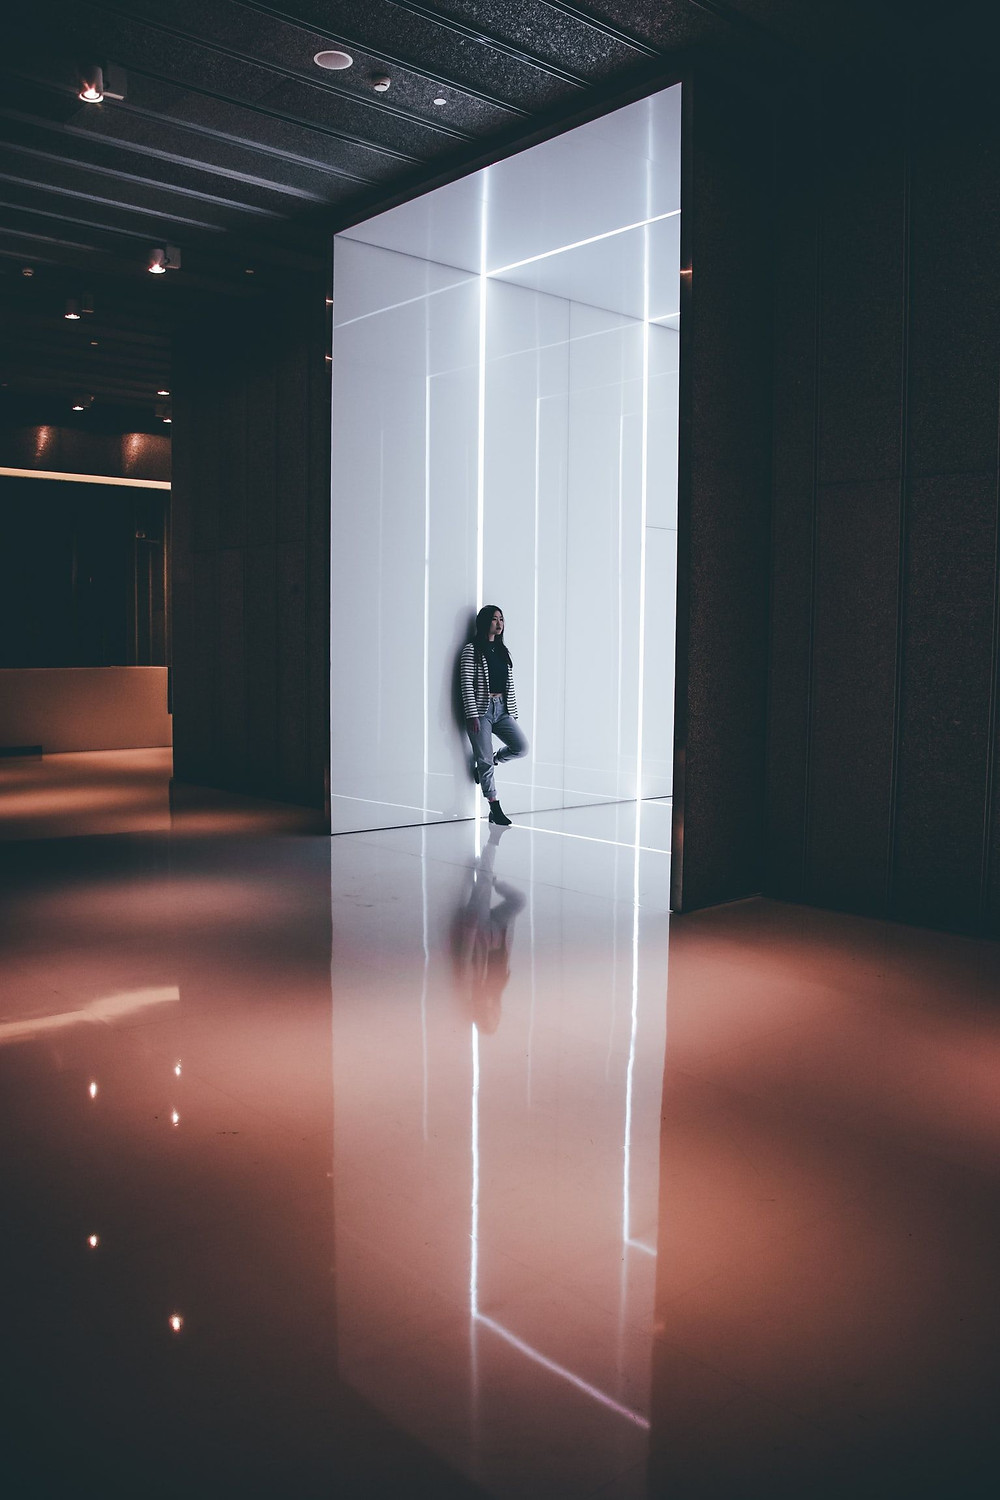 In A Large, Very Dimly Lit, Gallery-Exhibit Like Chamber, A White Wall With A Grid Of Lights Is Leaned Against By An Asian In Gray Jeans, Gray Cardigan, Black Boots, And Black Shirt, With A Solemn And Distant Look On Their Face